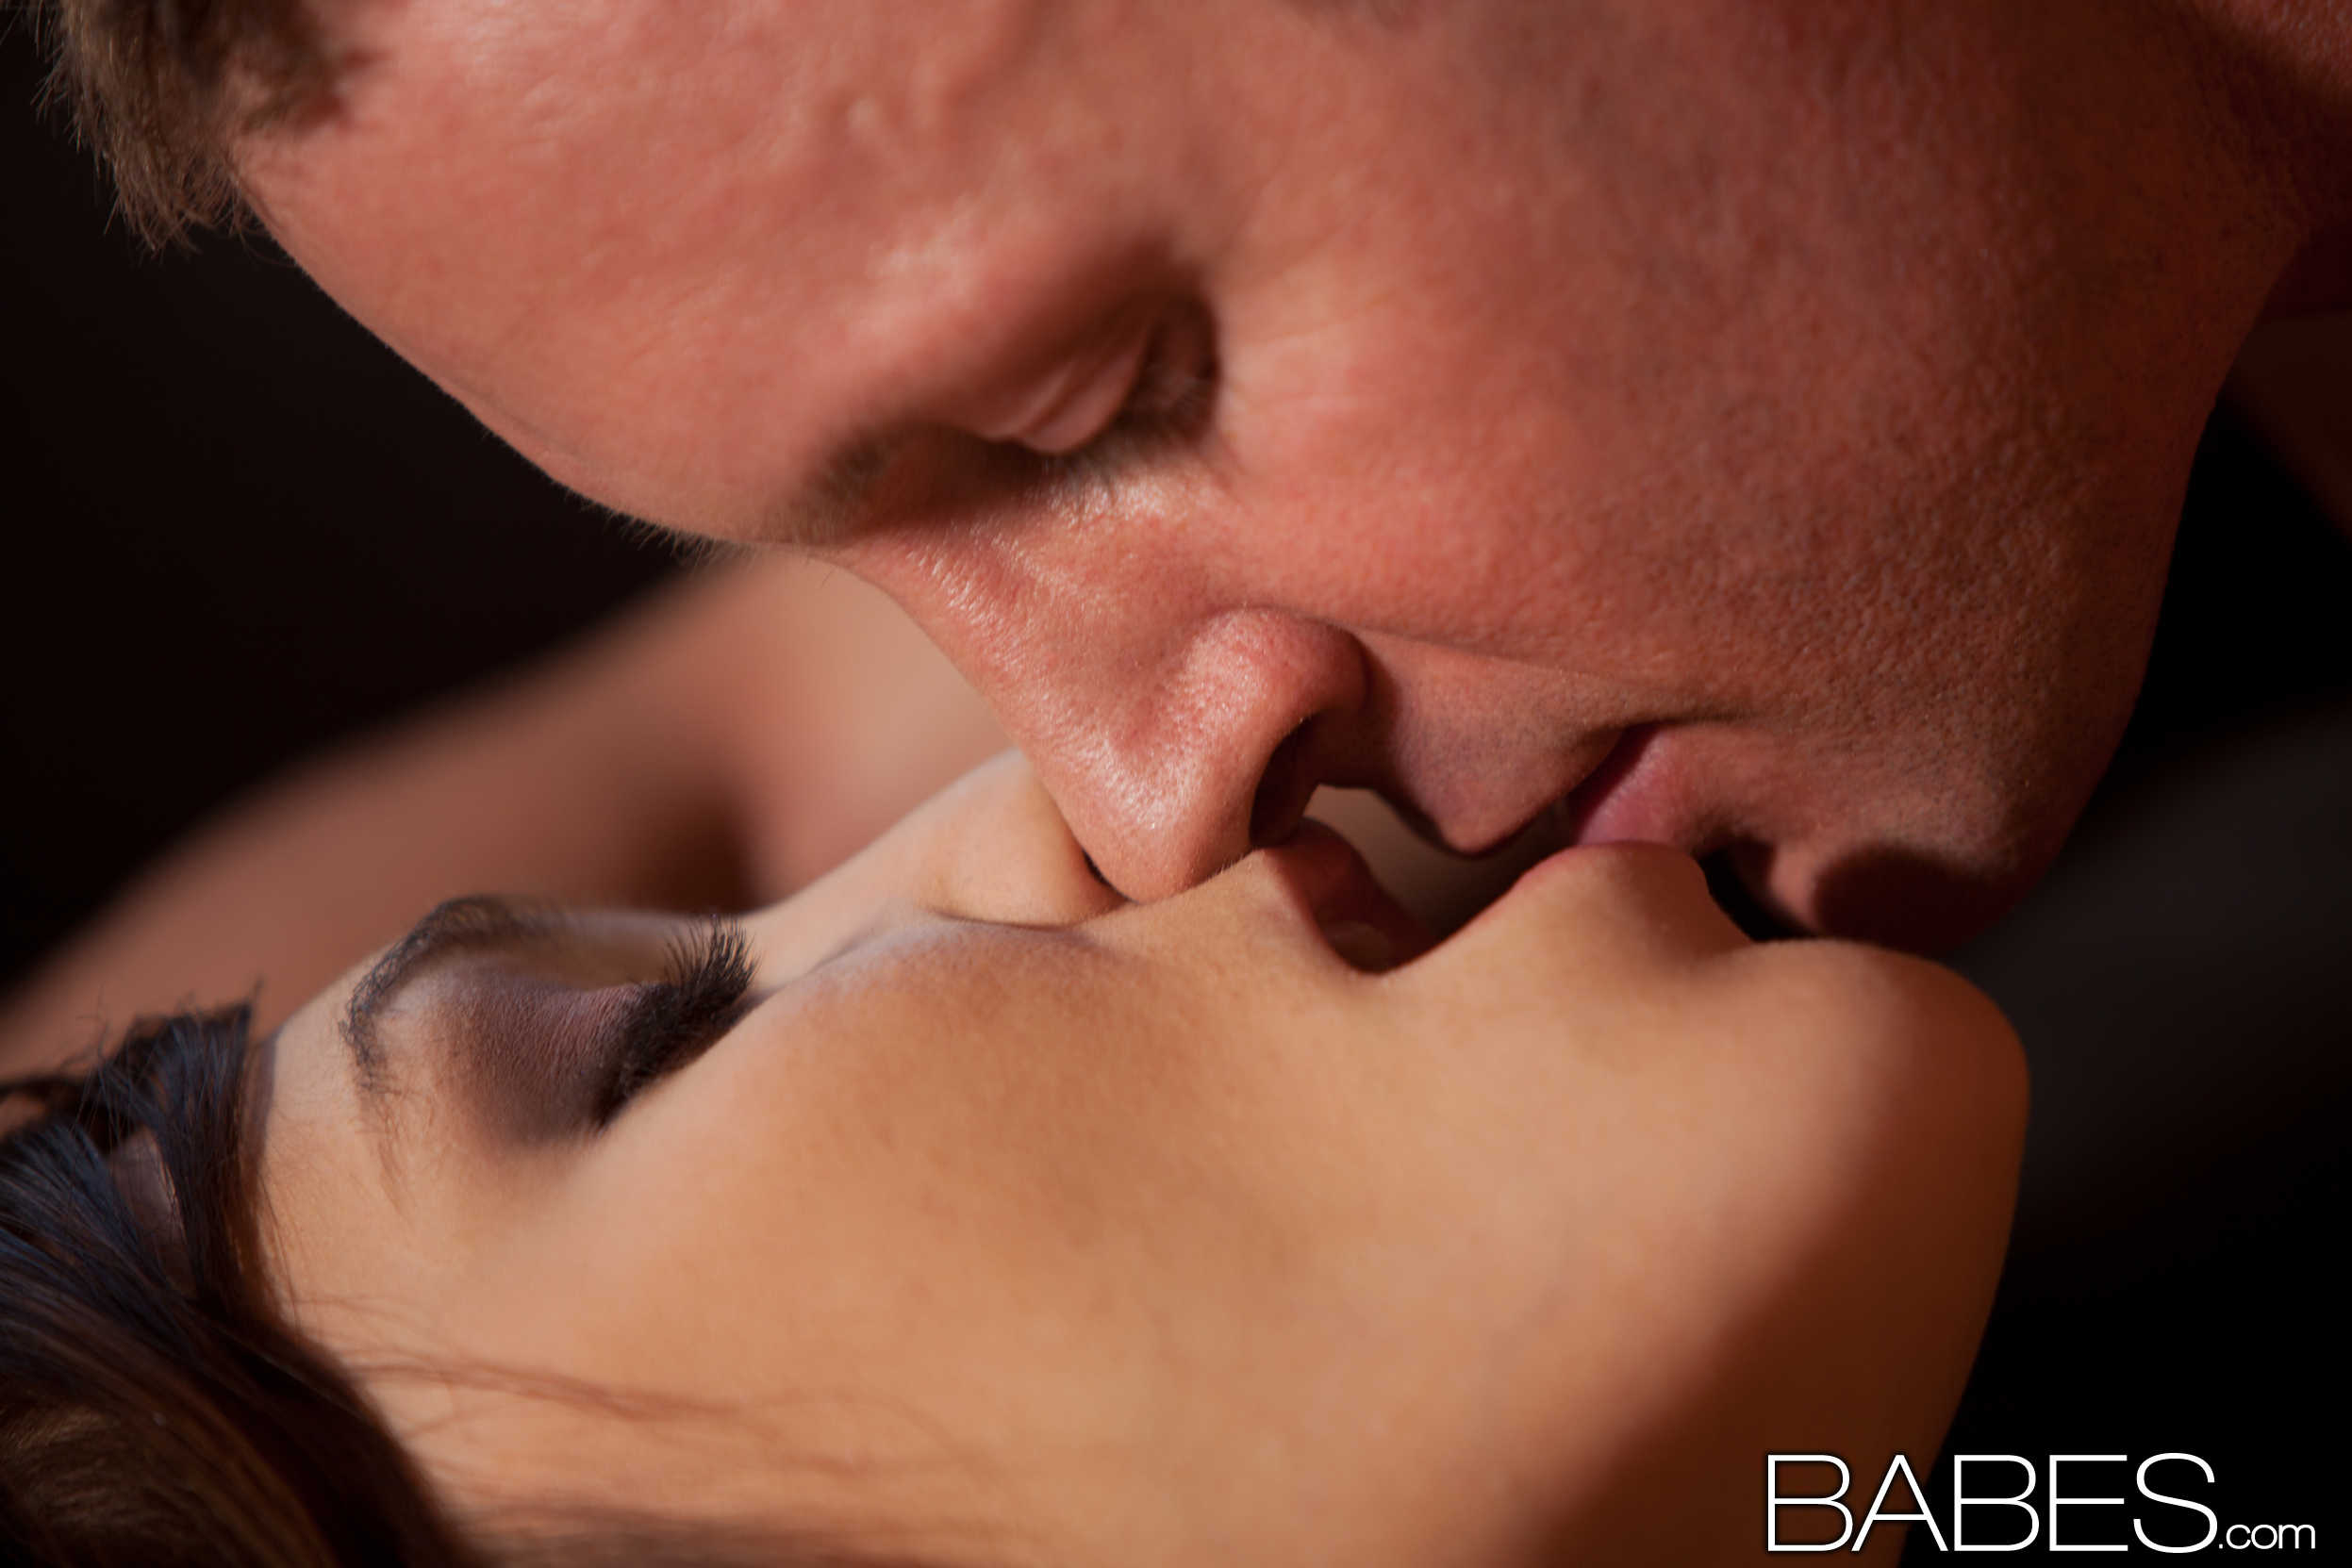 Babes 'Effervescent Touch' starring Holly Michaels (Photo 96)